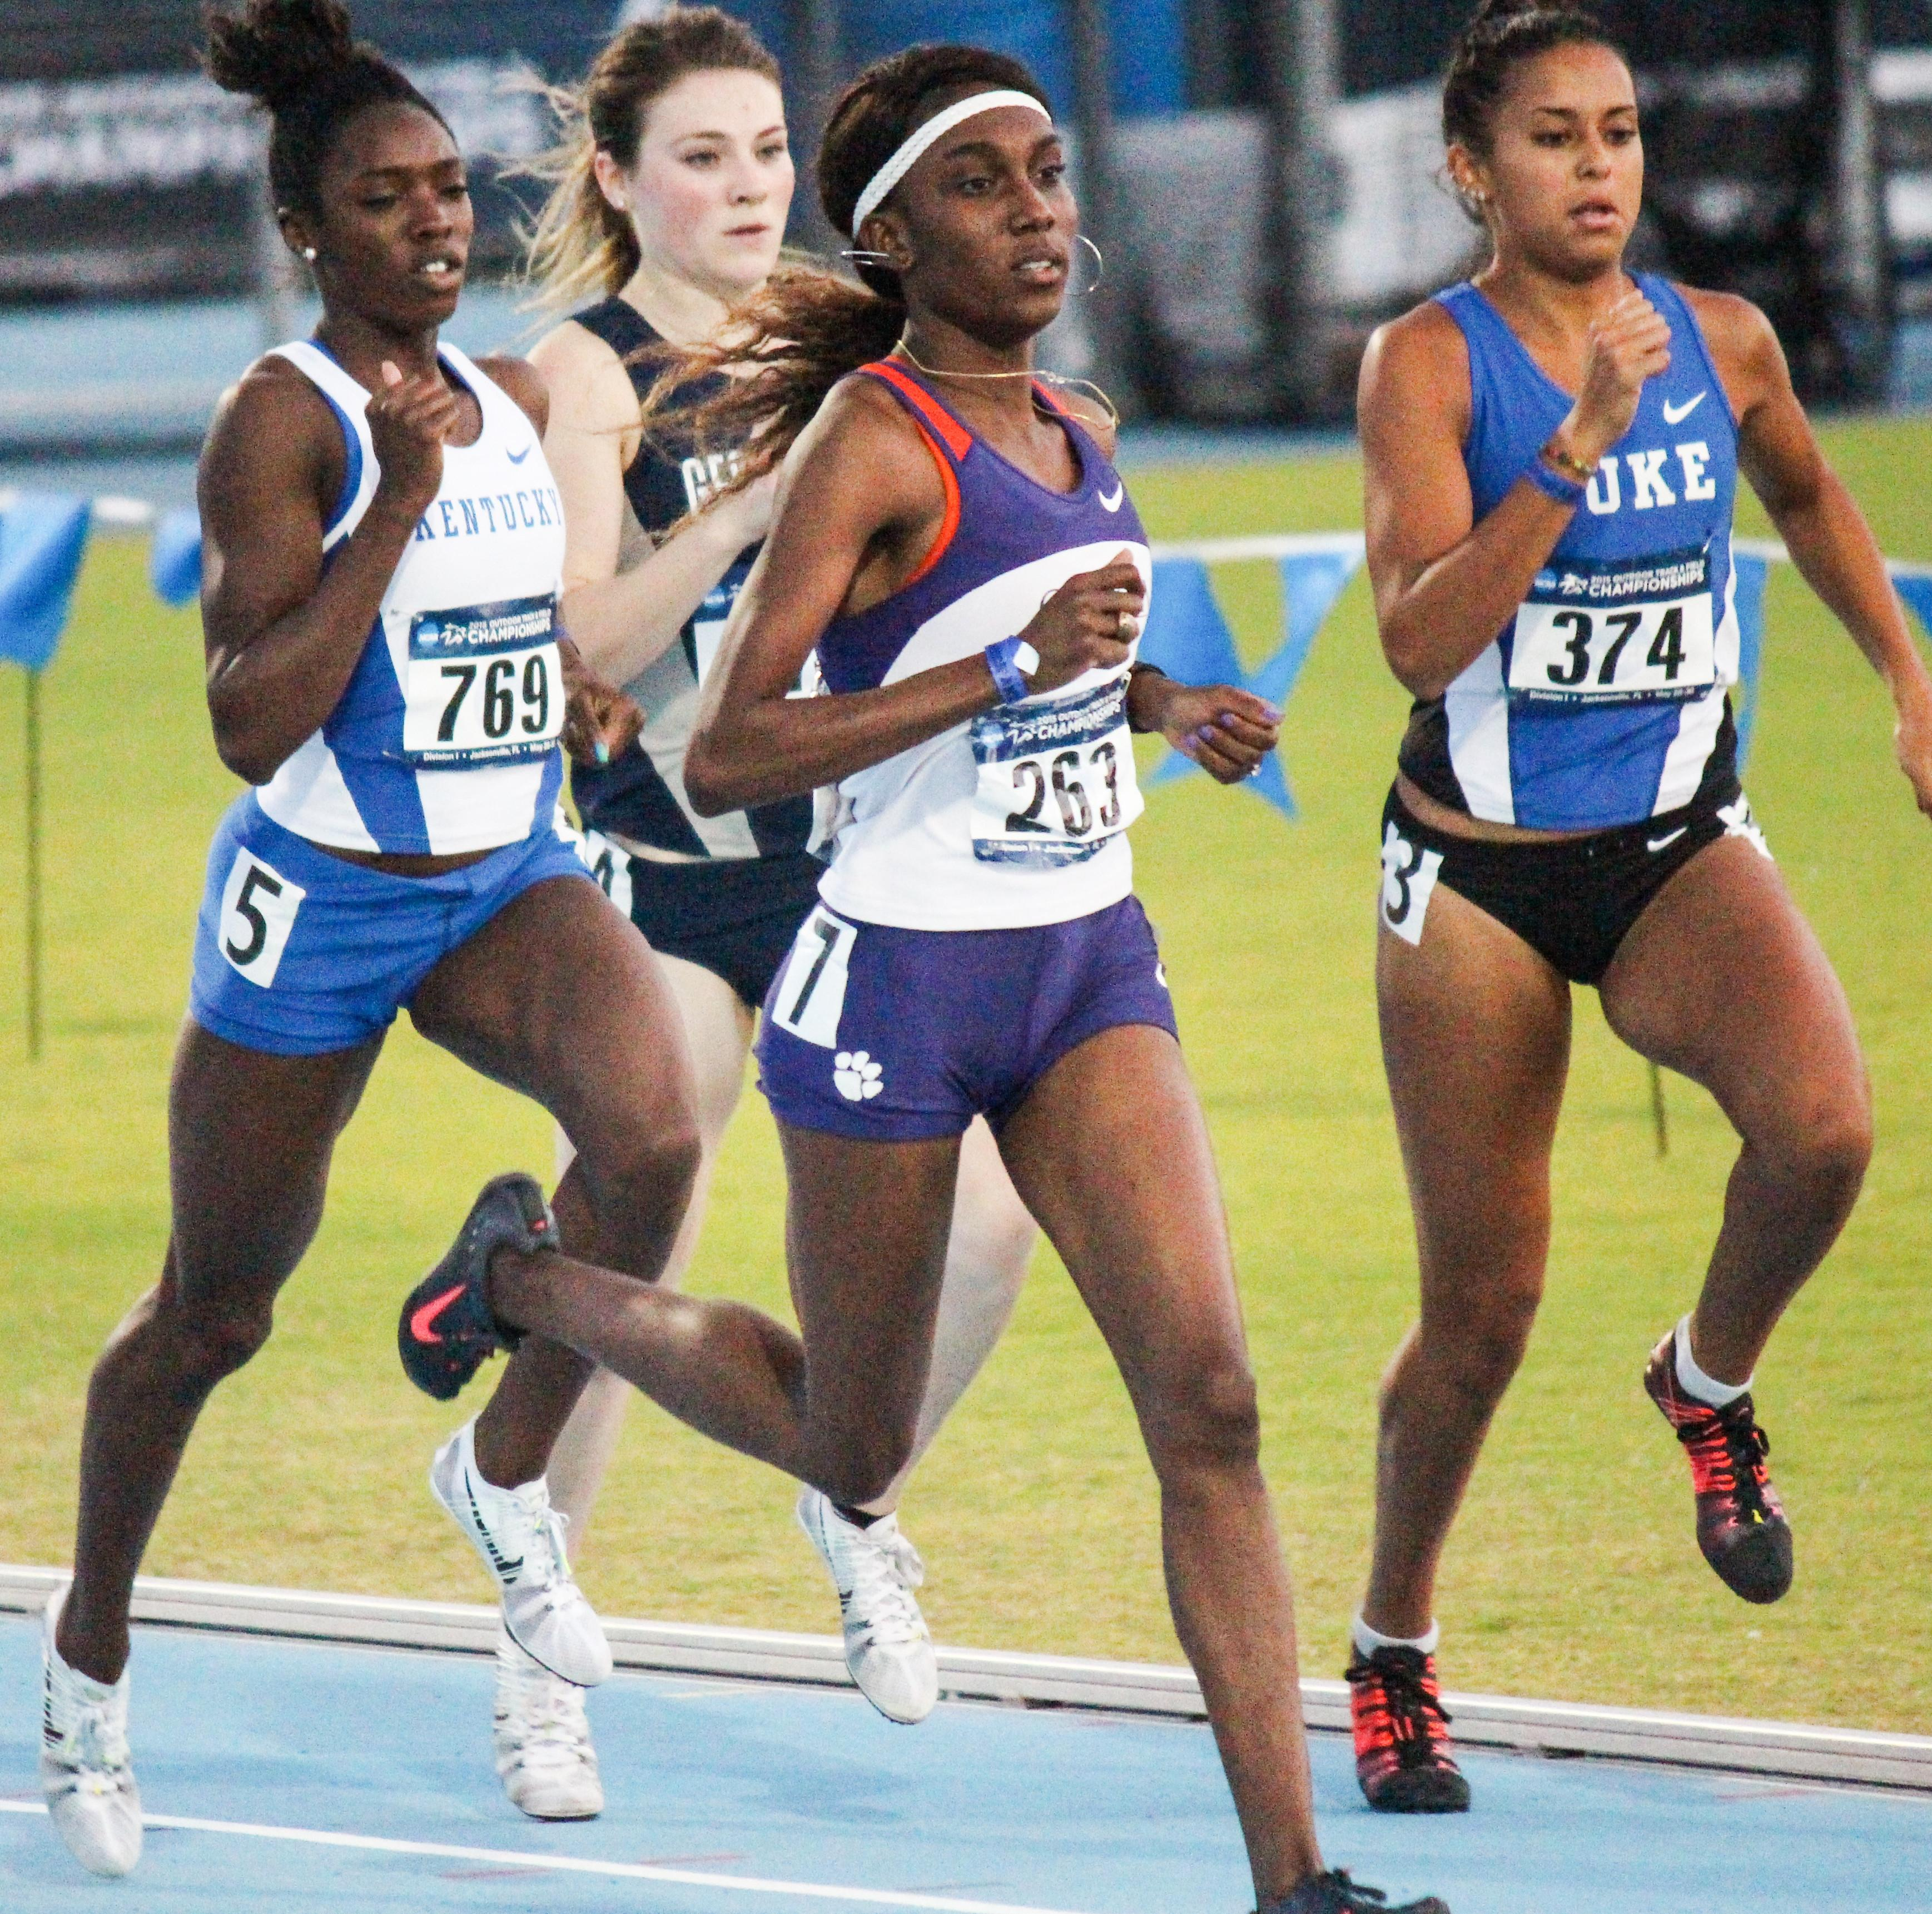 Goule Wins Jamaican Crown; Lamb Nabs USA Junior Title